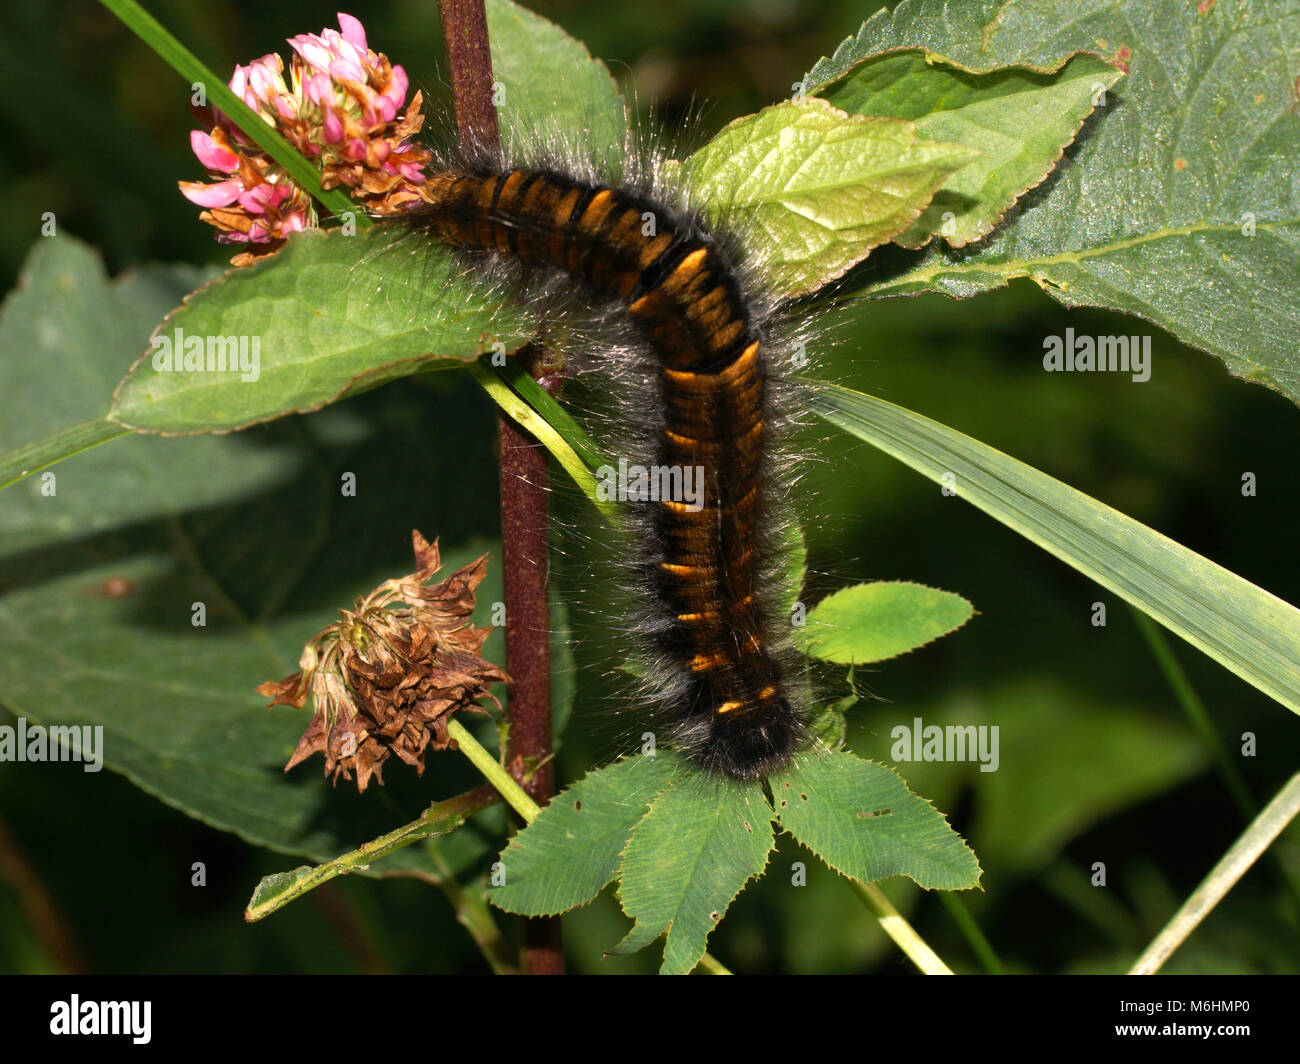 Large brown hairy caterpillar on the plant. Macrothylacia rubi, the fox moth, is a lepidopteran belonging to the - Stock Image